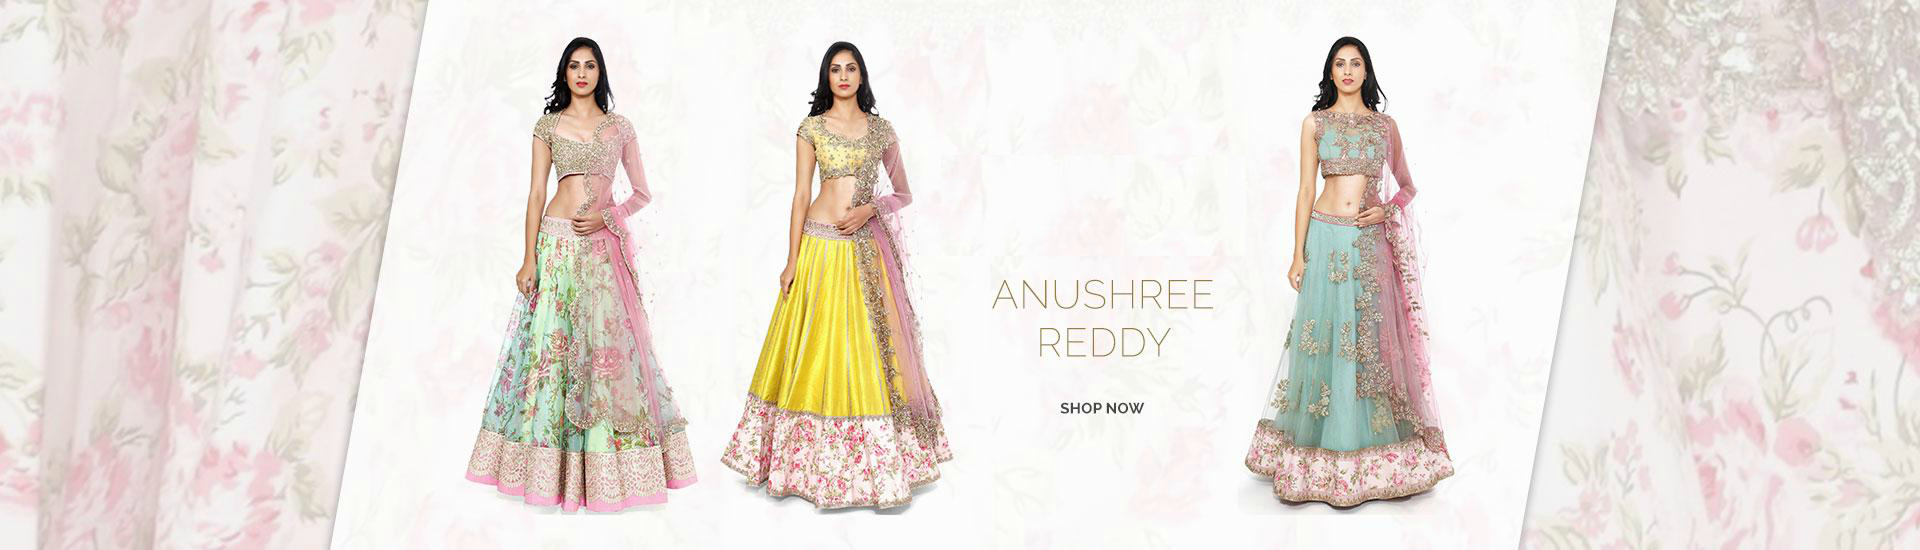 Anushree Reddy Designer Clothing